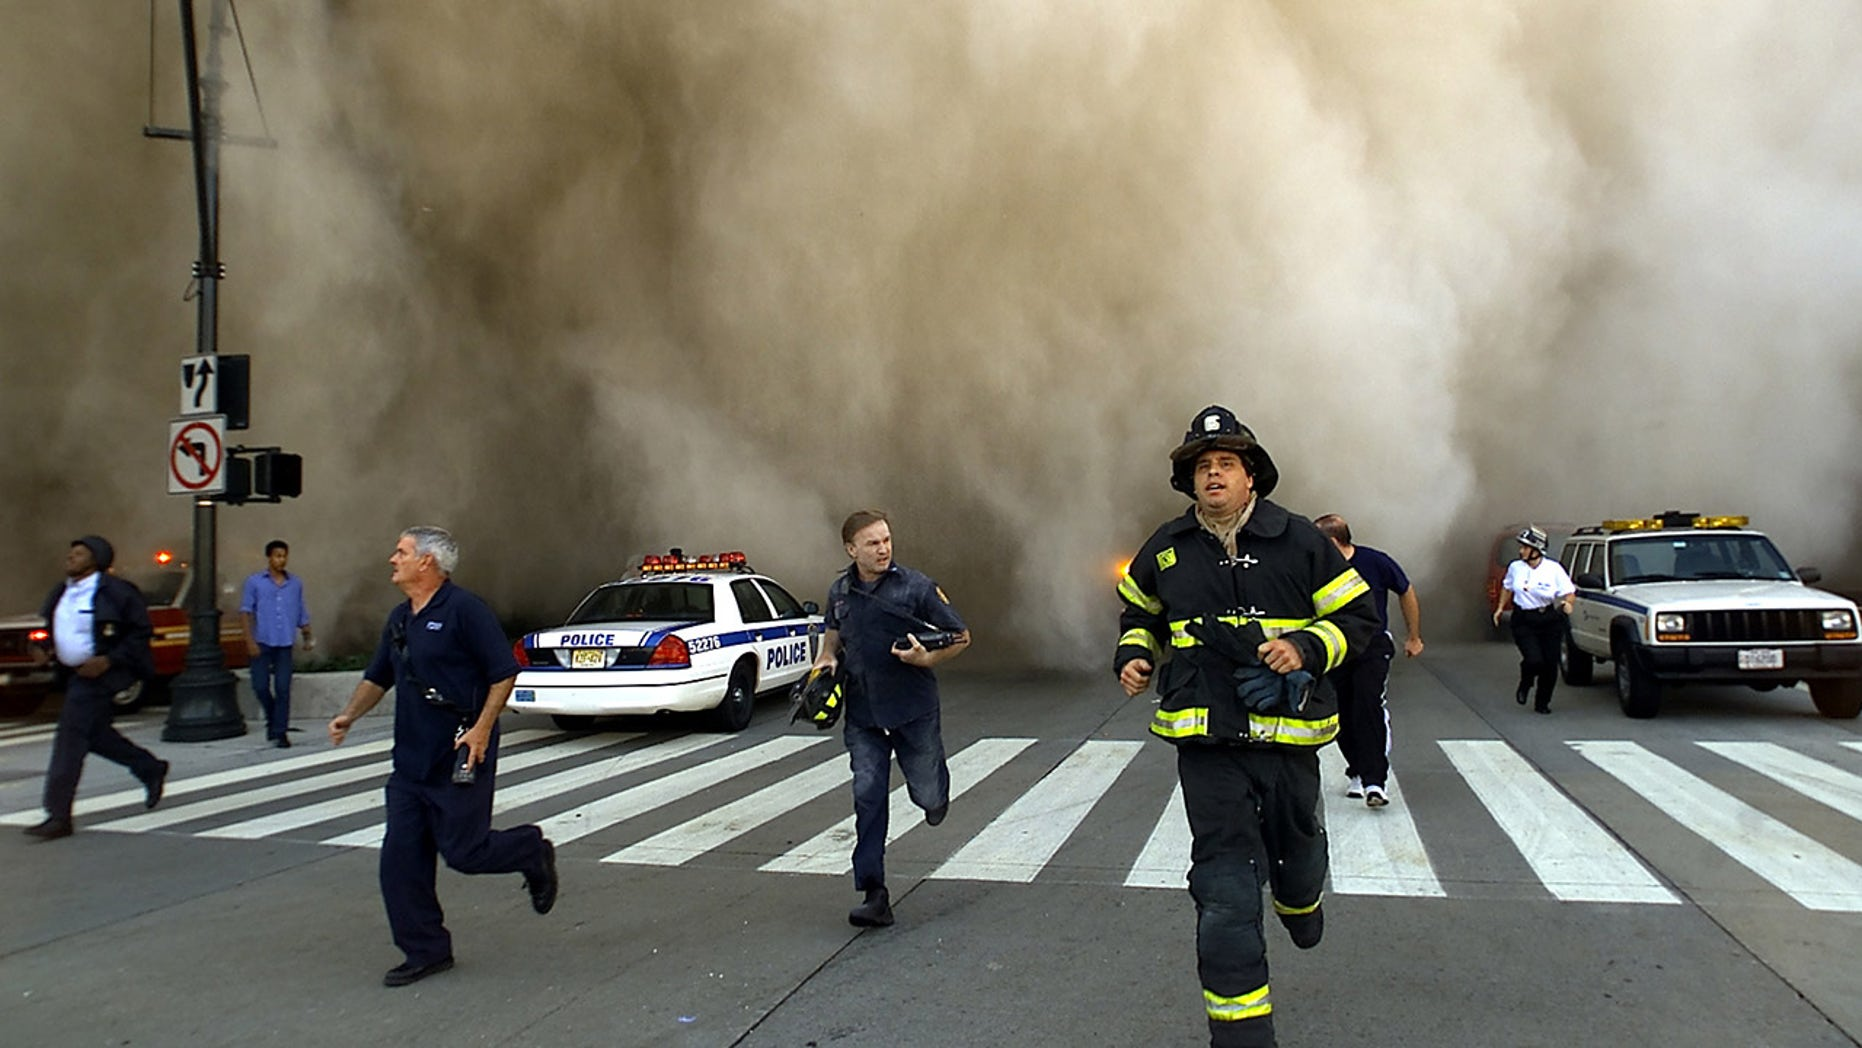 Democrats introduce resolution..The government 'unfairly profiled and targeted Arab, Muslim, Middle Eastern, South Asian, and Sikh communities' after 9/11 attacks